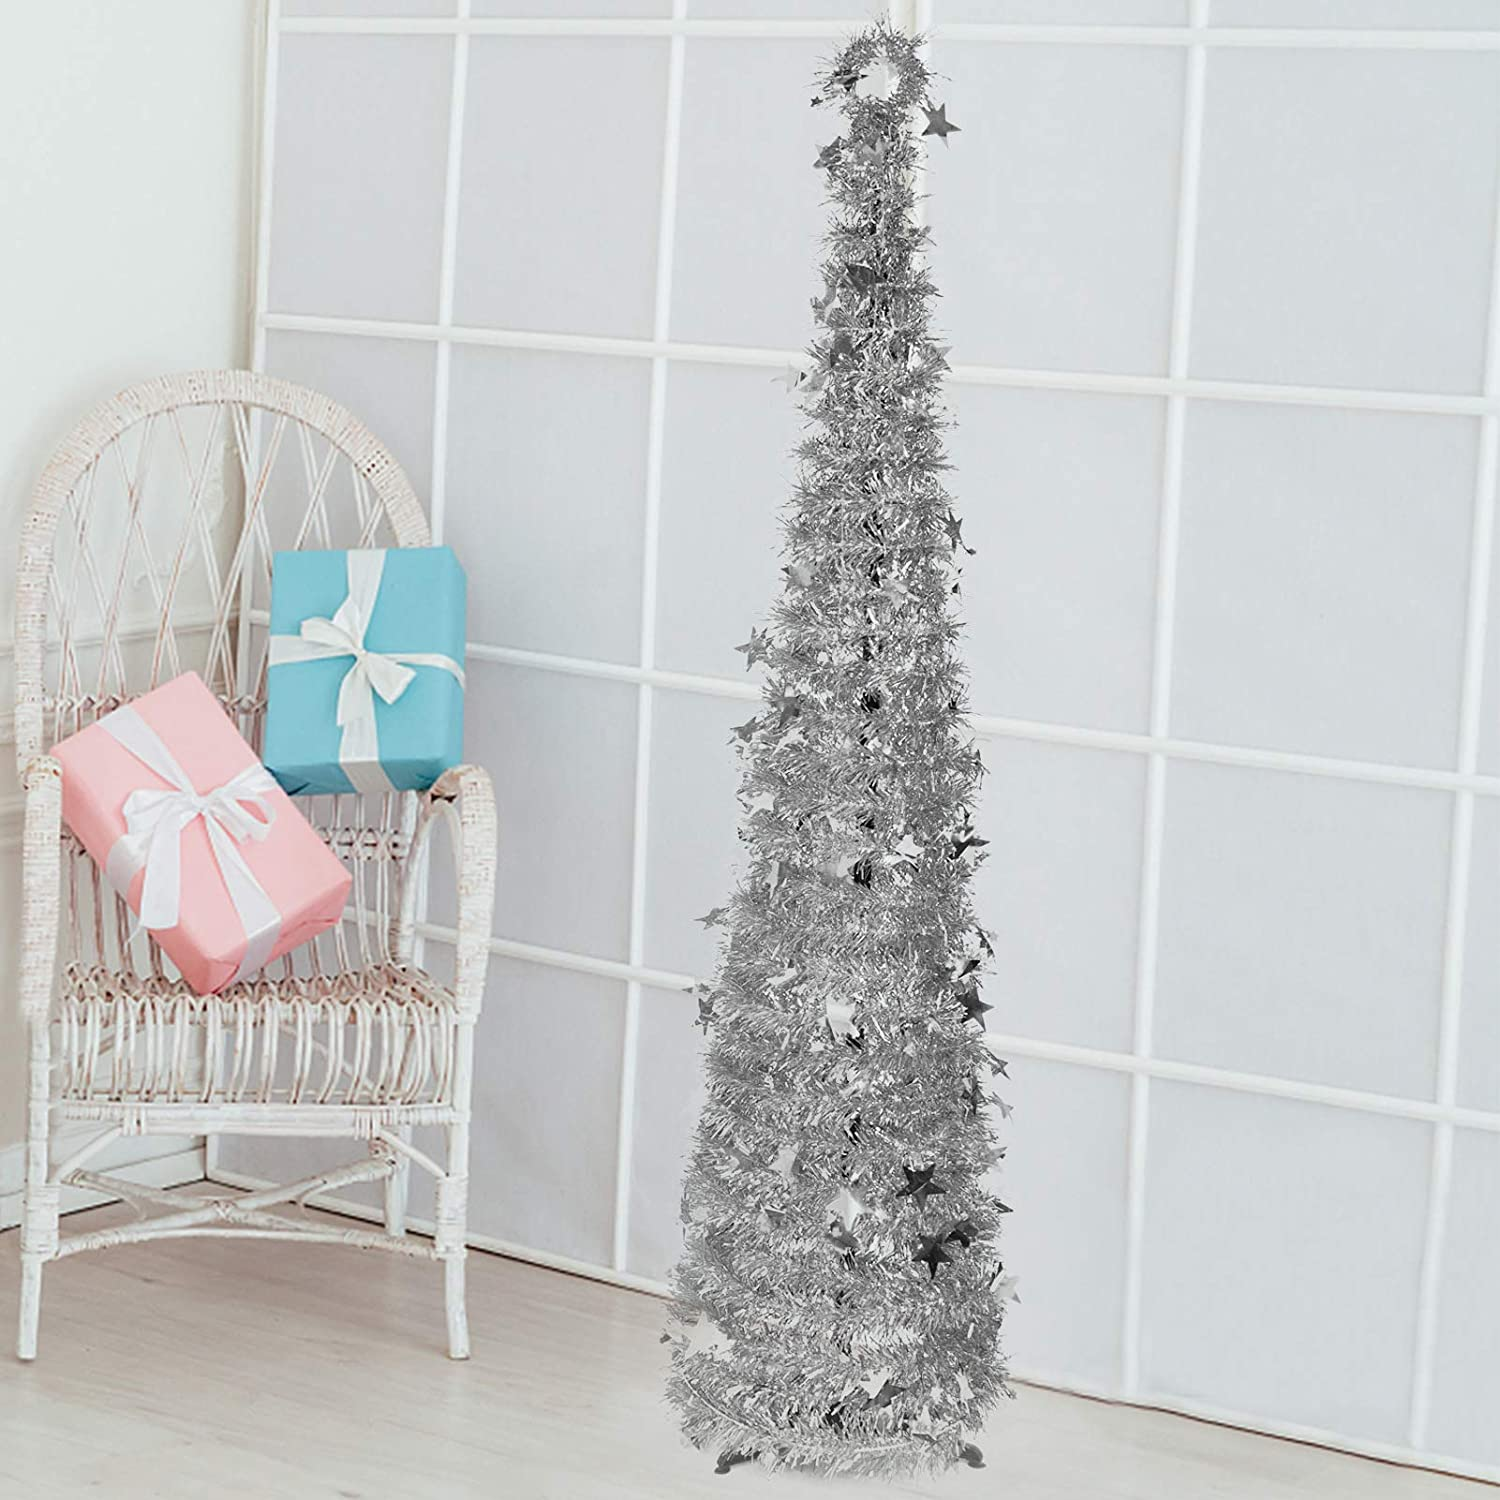 Indoor Christmas Tree Decorations, 5.9ft Vintage Cute Skinny Small Pop up Xmas Tree Decor for The Home Bedrooms Office(Silver)